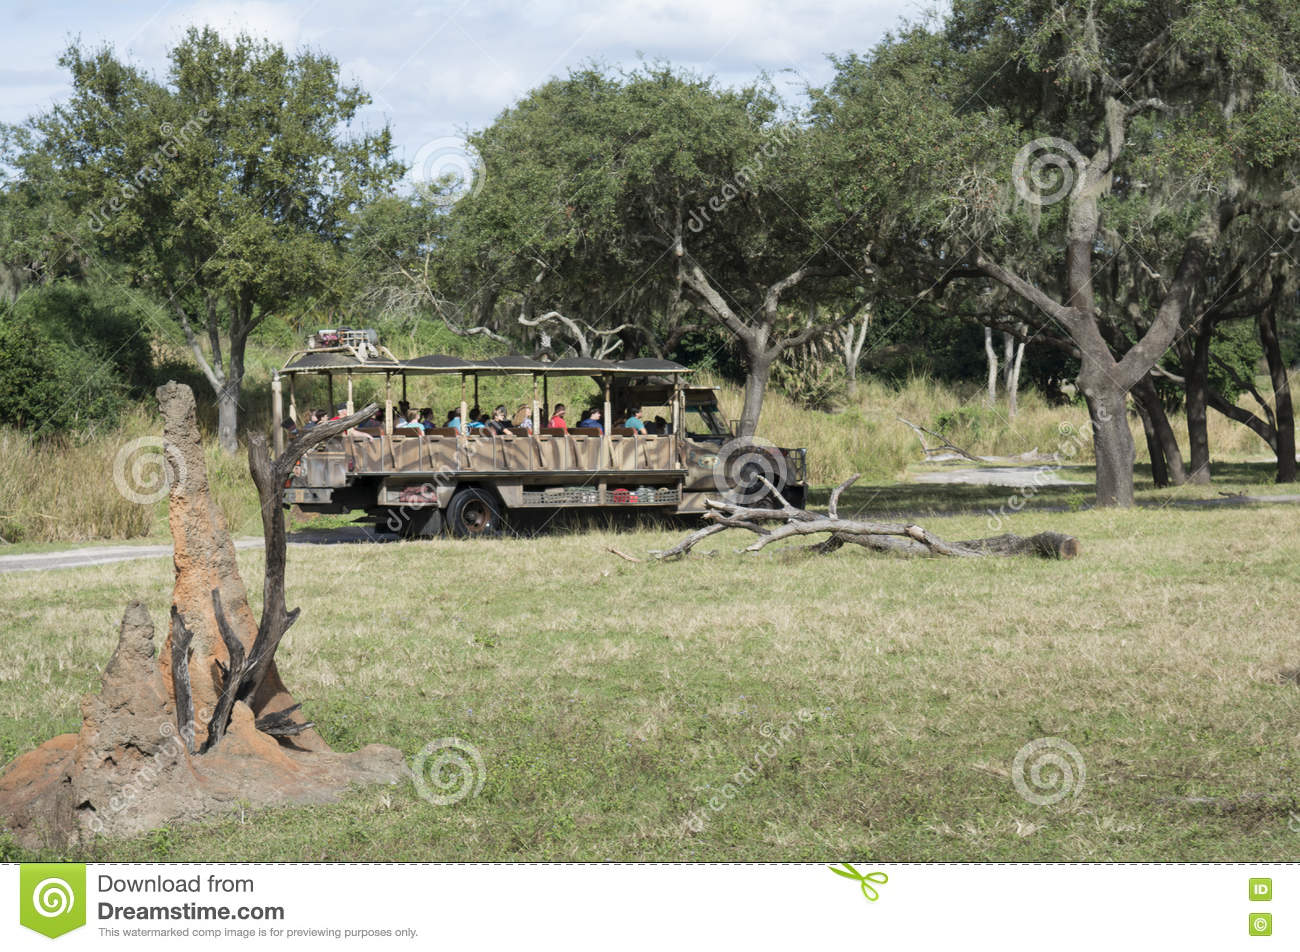 Disney-Wereld Kilimanjaro Safari Animal Kindom